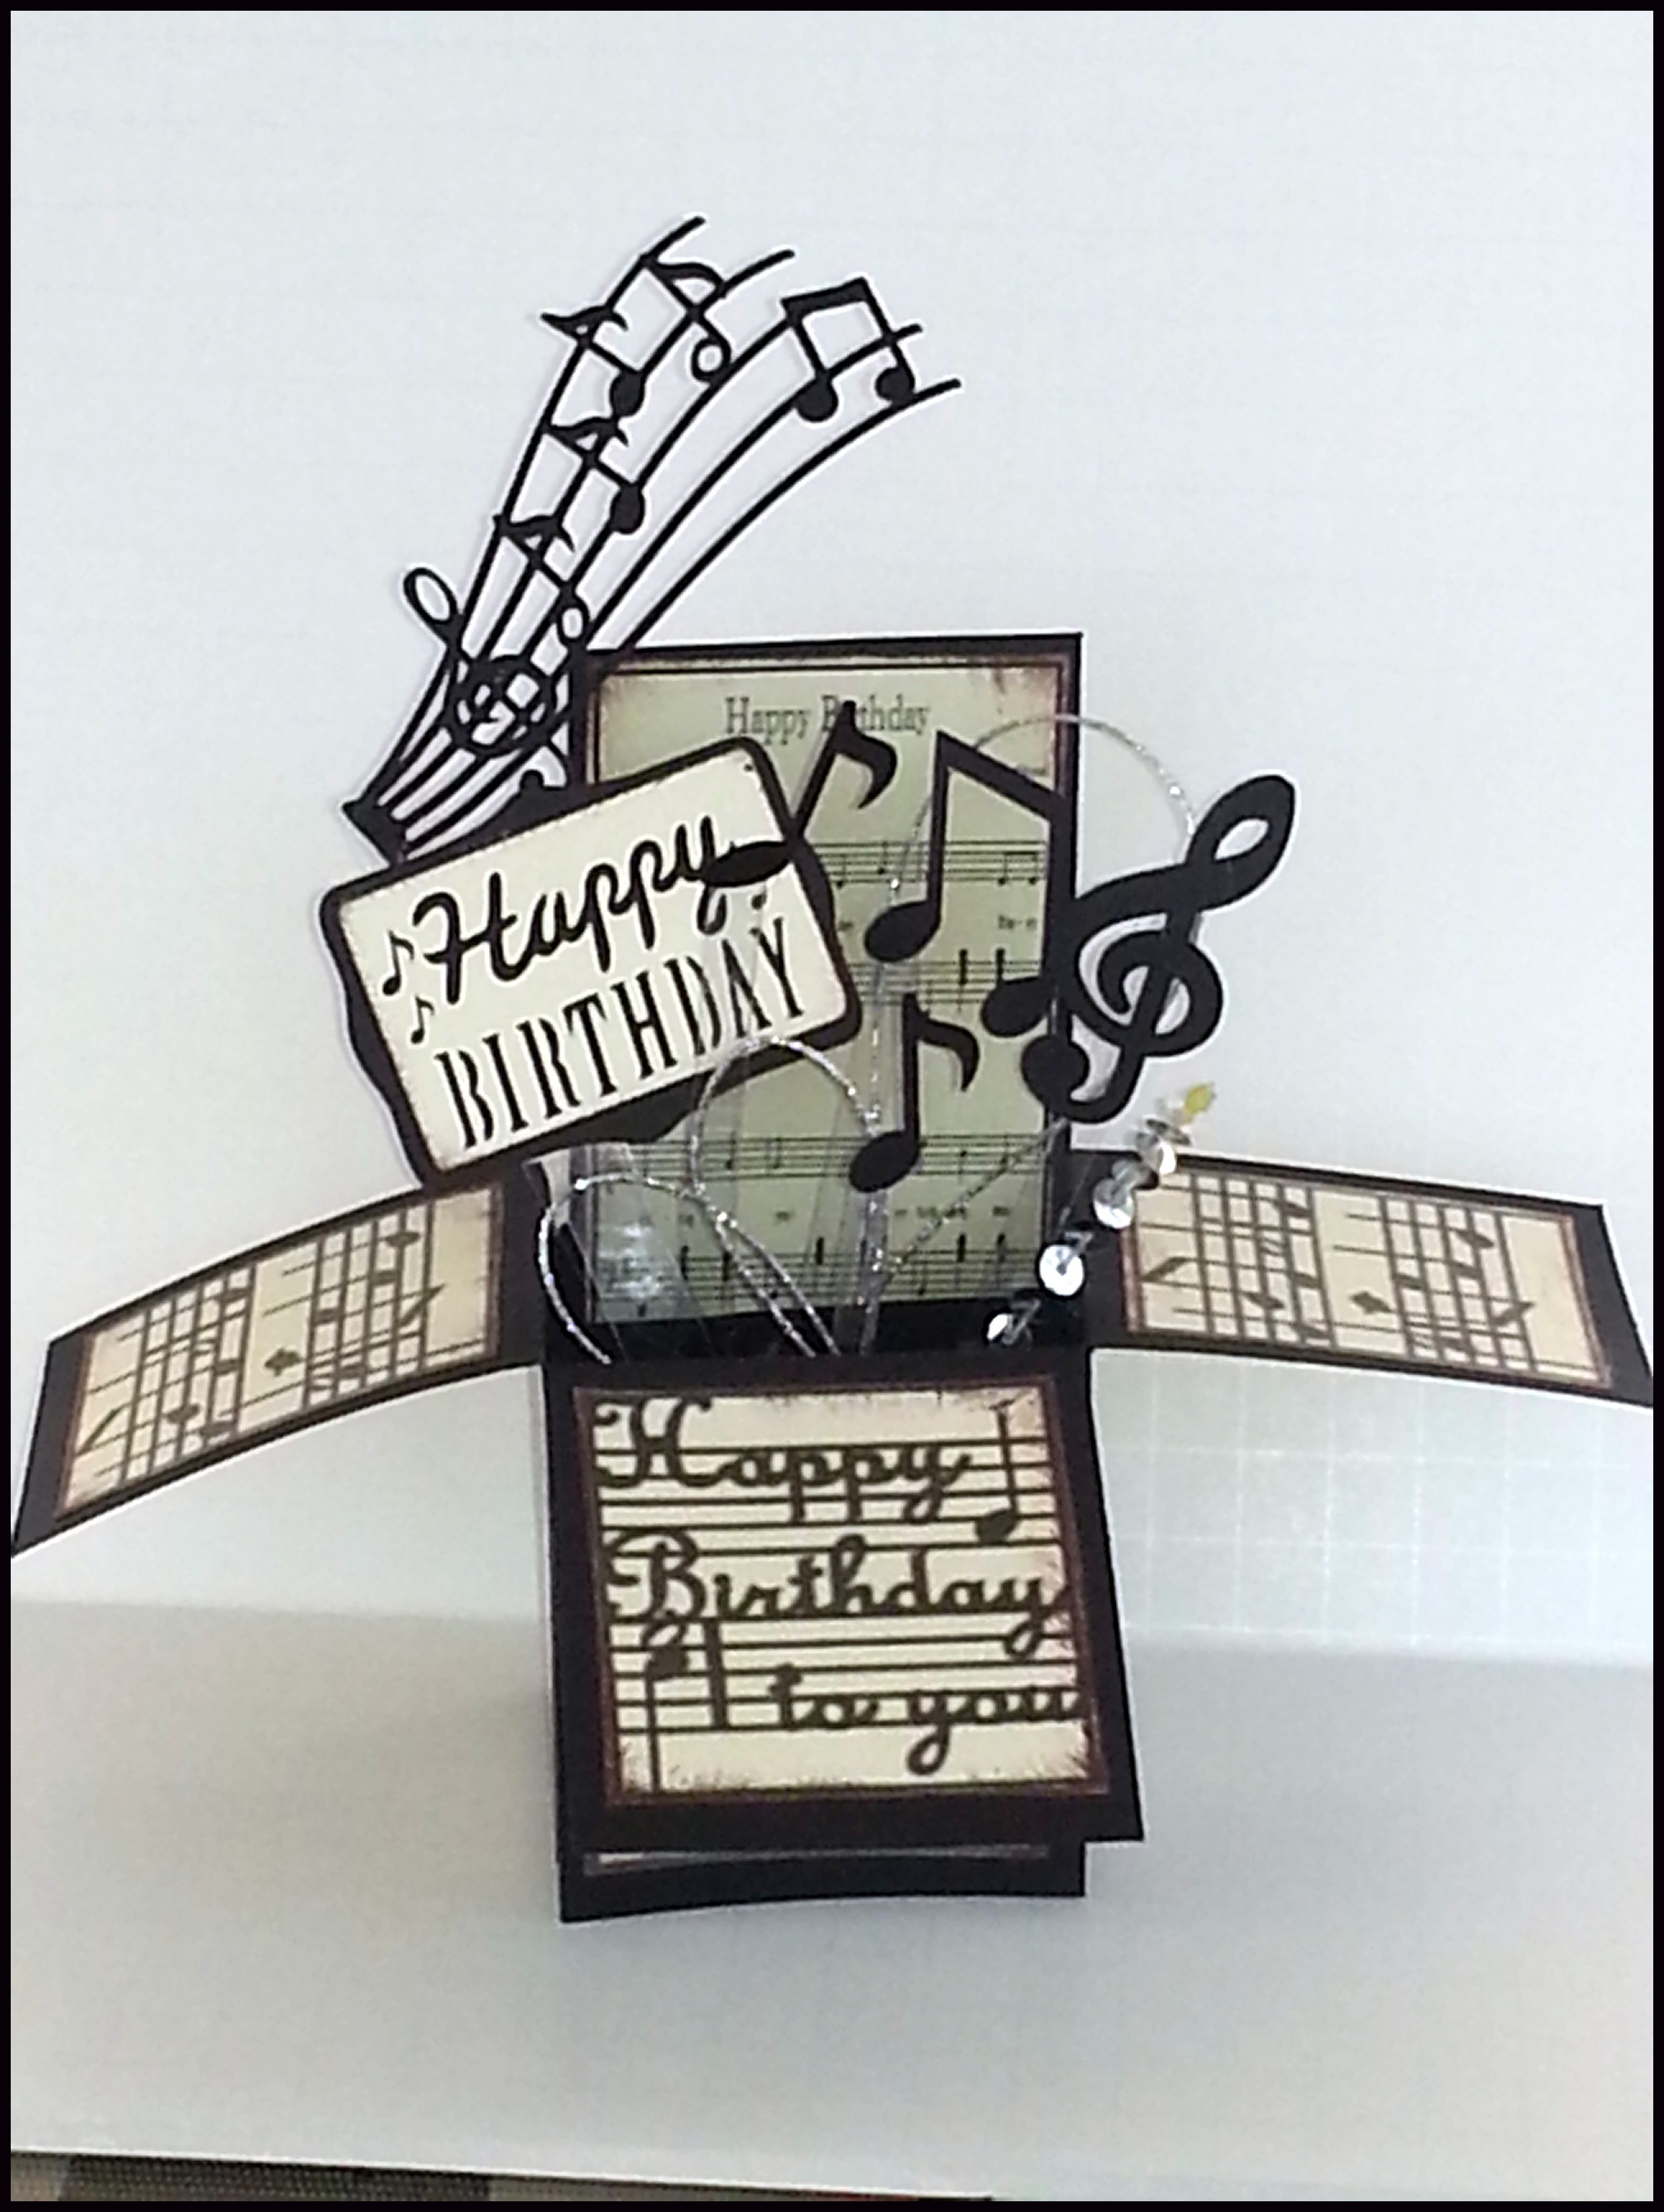 Cricut Happy Birthday Box Card Or Pop Up Box Card For Music Friends Made With Cricut Pop Up Box Cards Box Cards Tutorial Exploding Box Card